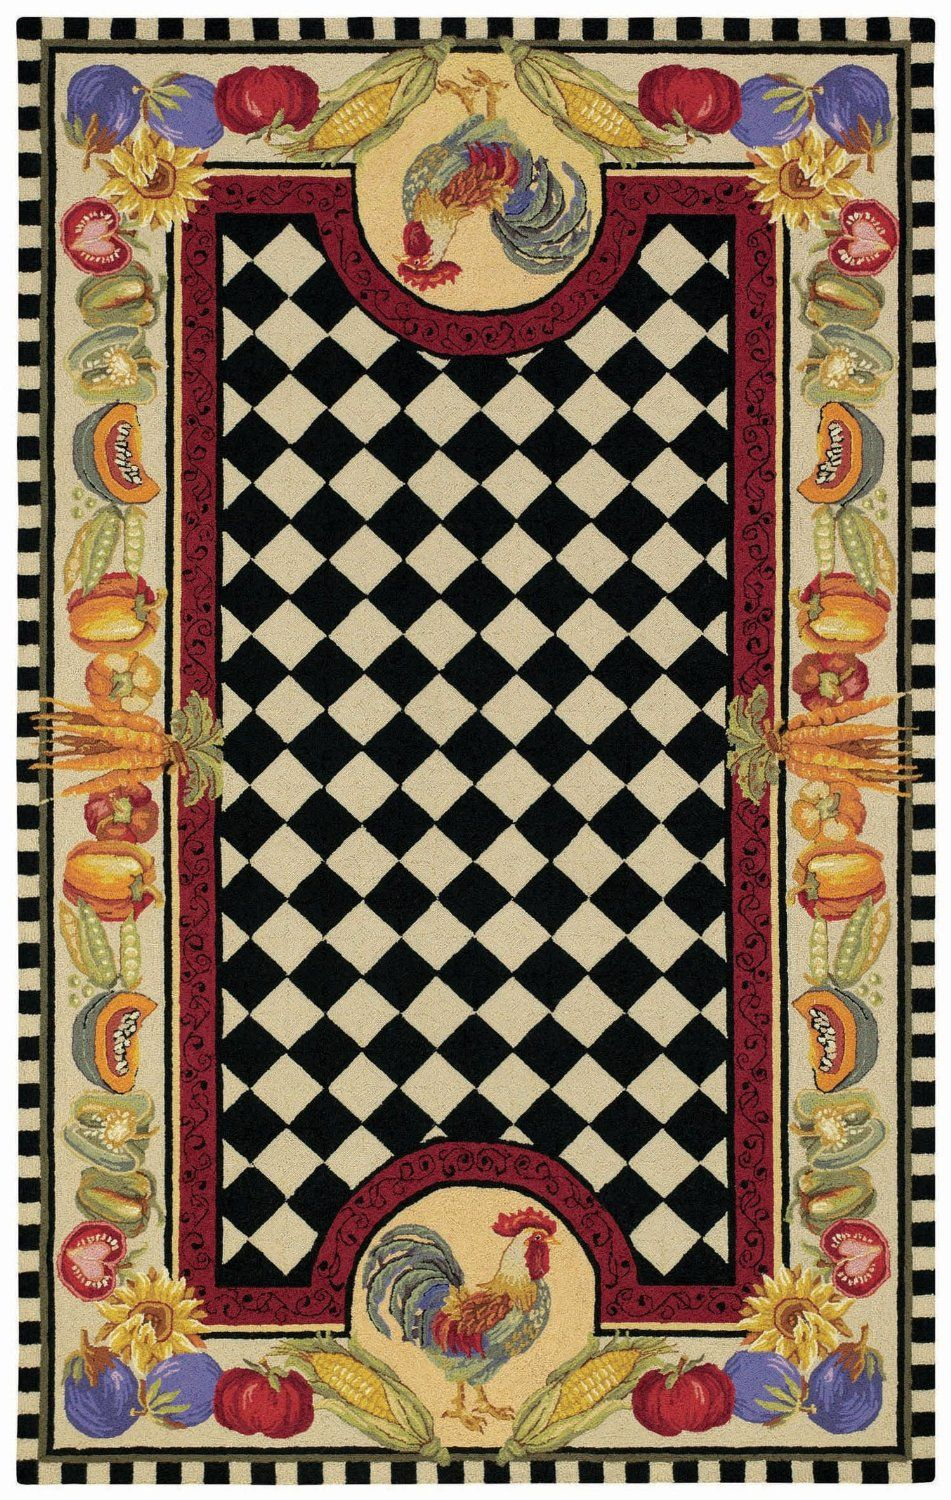 Contemporary Hand Made Novelty Rug With Black And White Checkered Center  And Two Roosters, Fruits Awesome Ideas